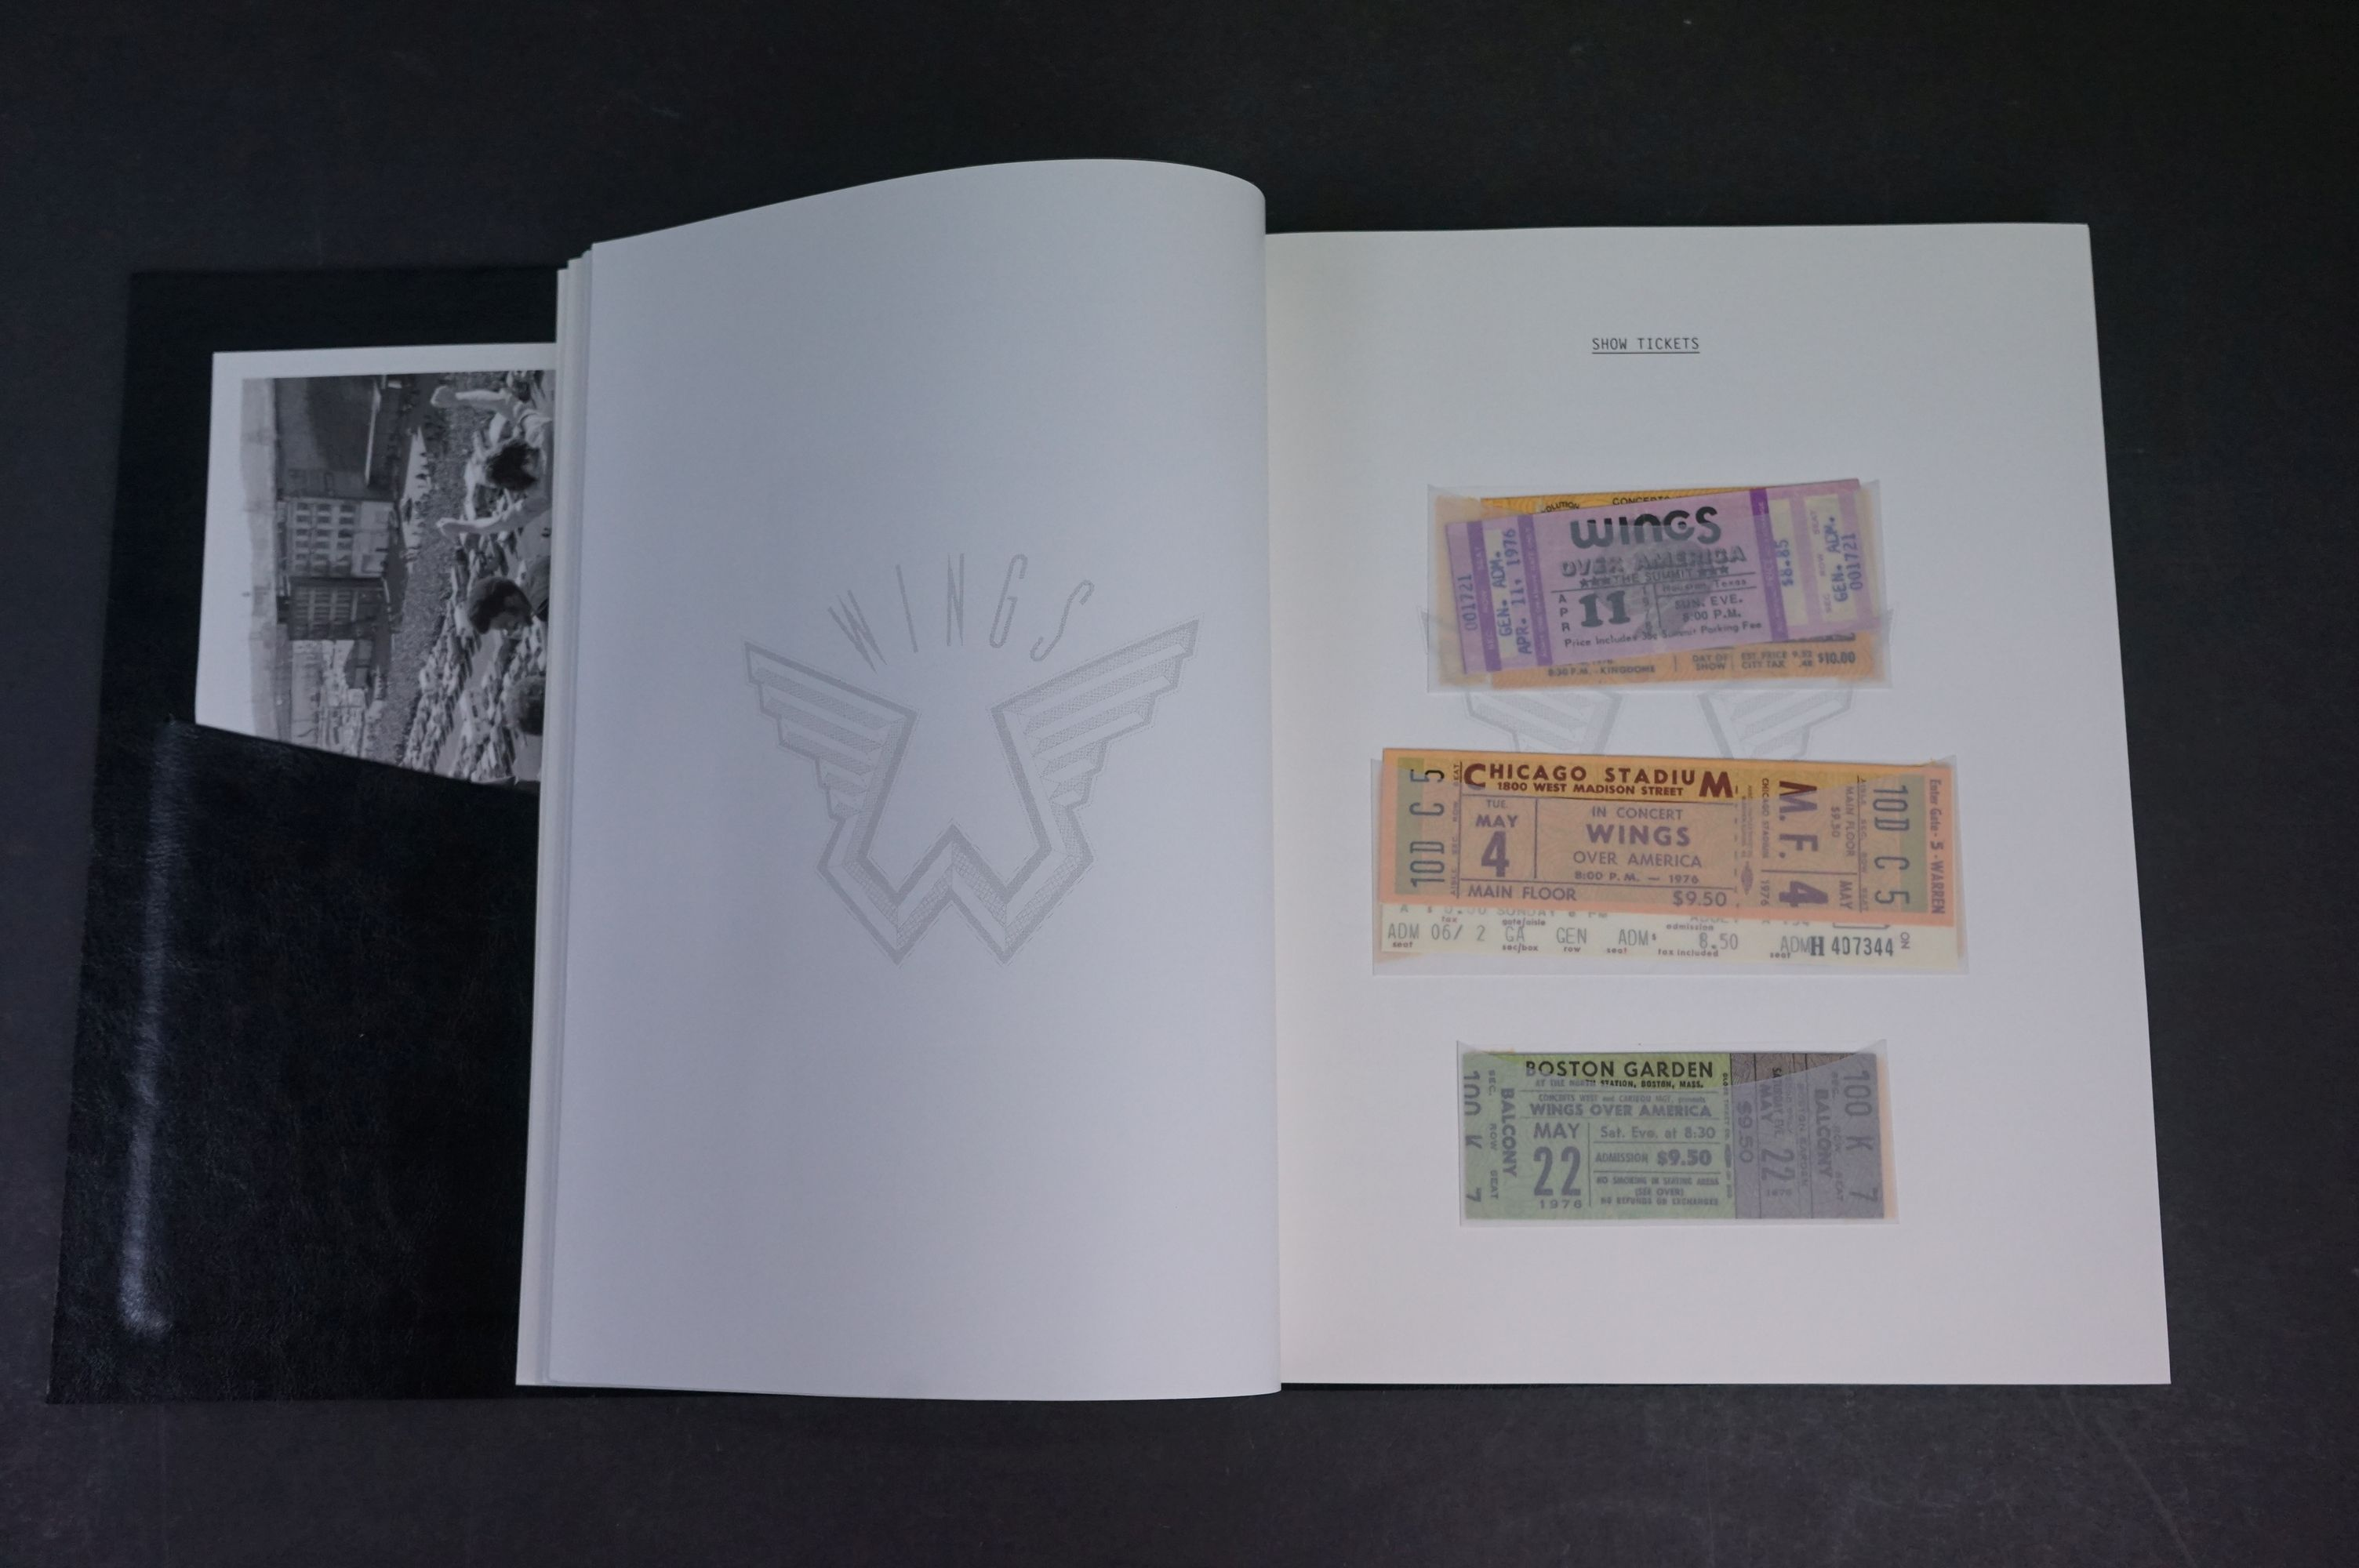 Box Set - Paul McCartney & Wings - Wings Over America numbered box set (03555) deluxe box set, ex - Image 4 of 18